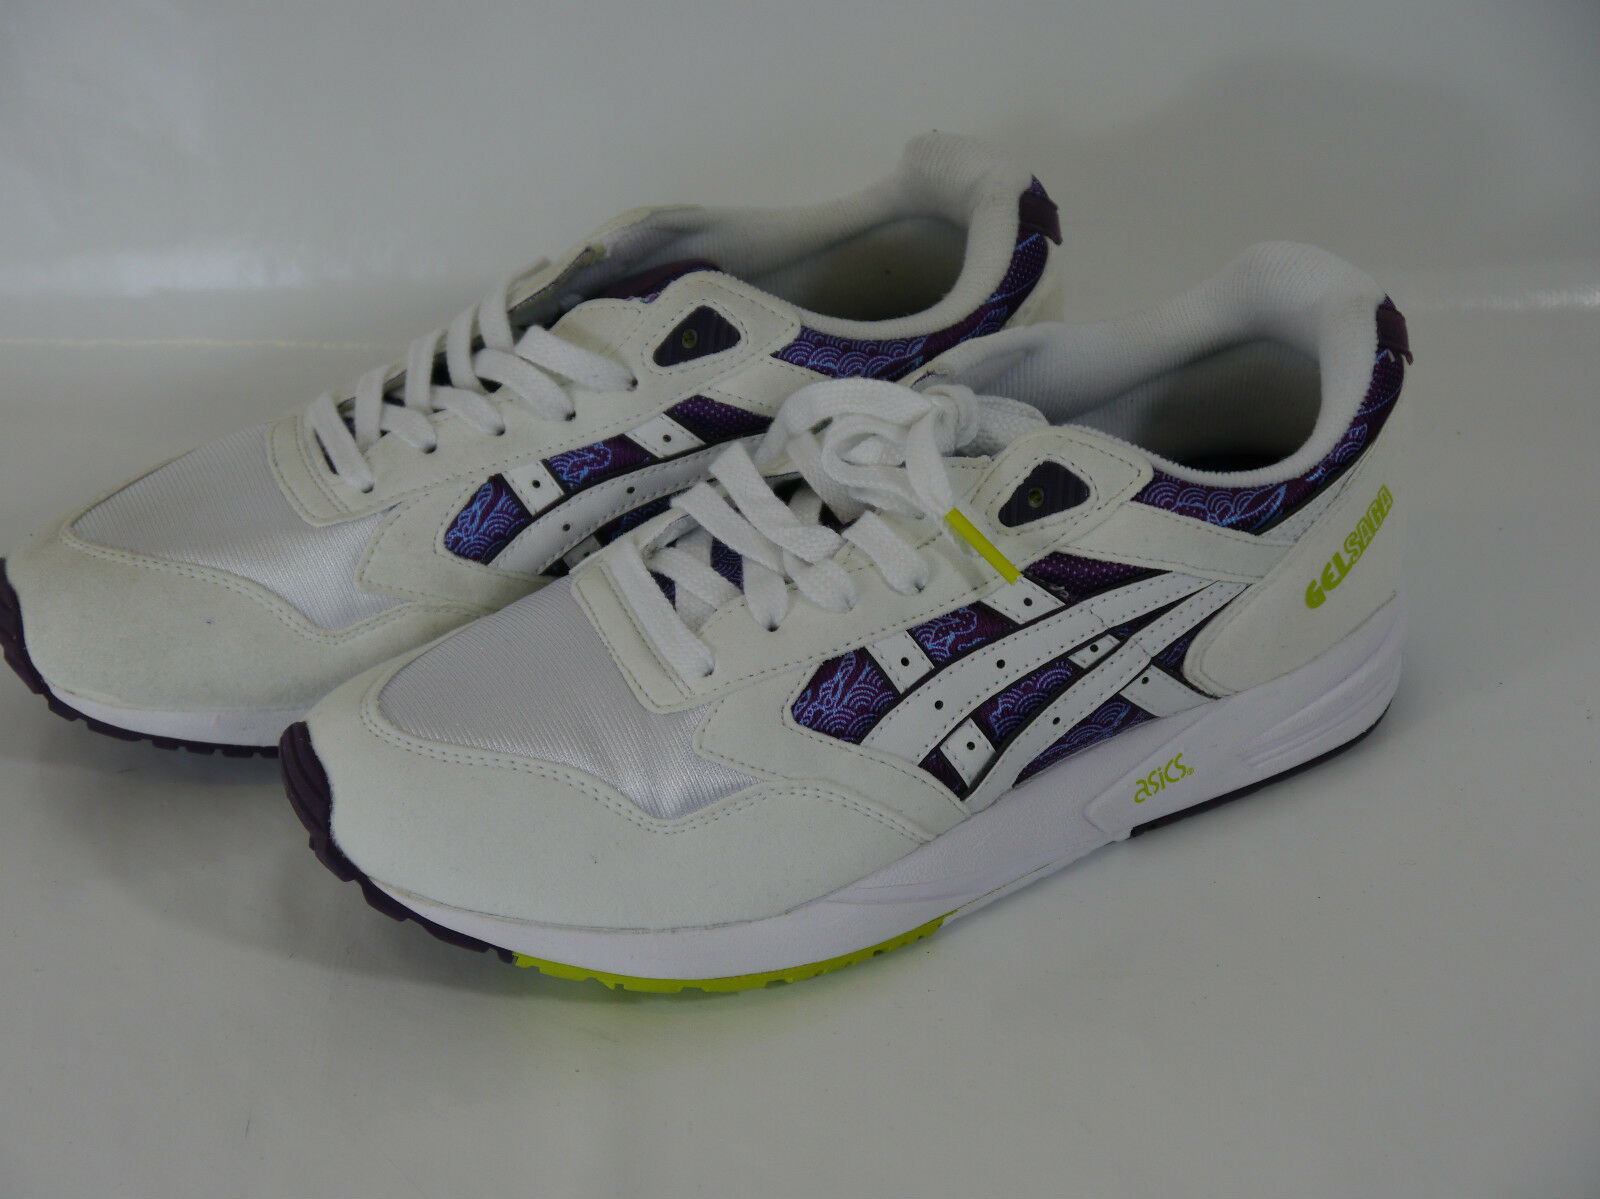 ASICS GEL SAGA MEN'S Weiß MEN'S SAGA WOMEN'S TRAINERS BNIB UK 7 EUR 40.5 US 9 4fd18d